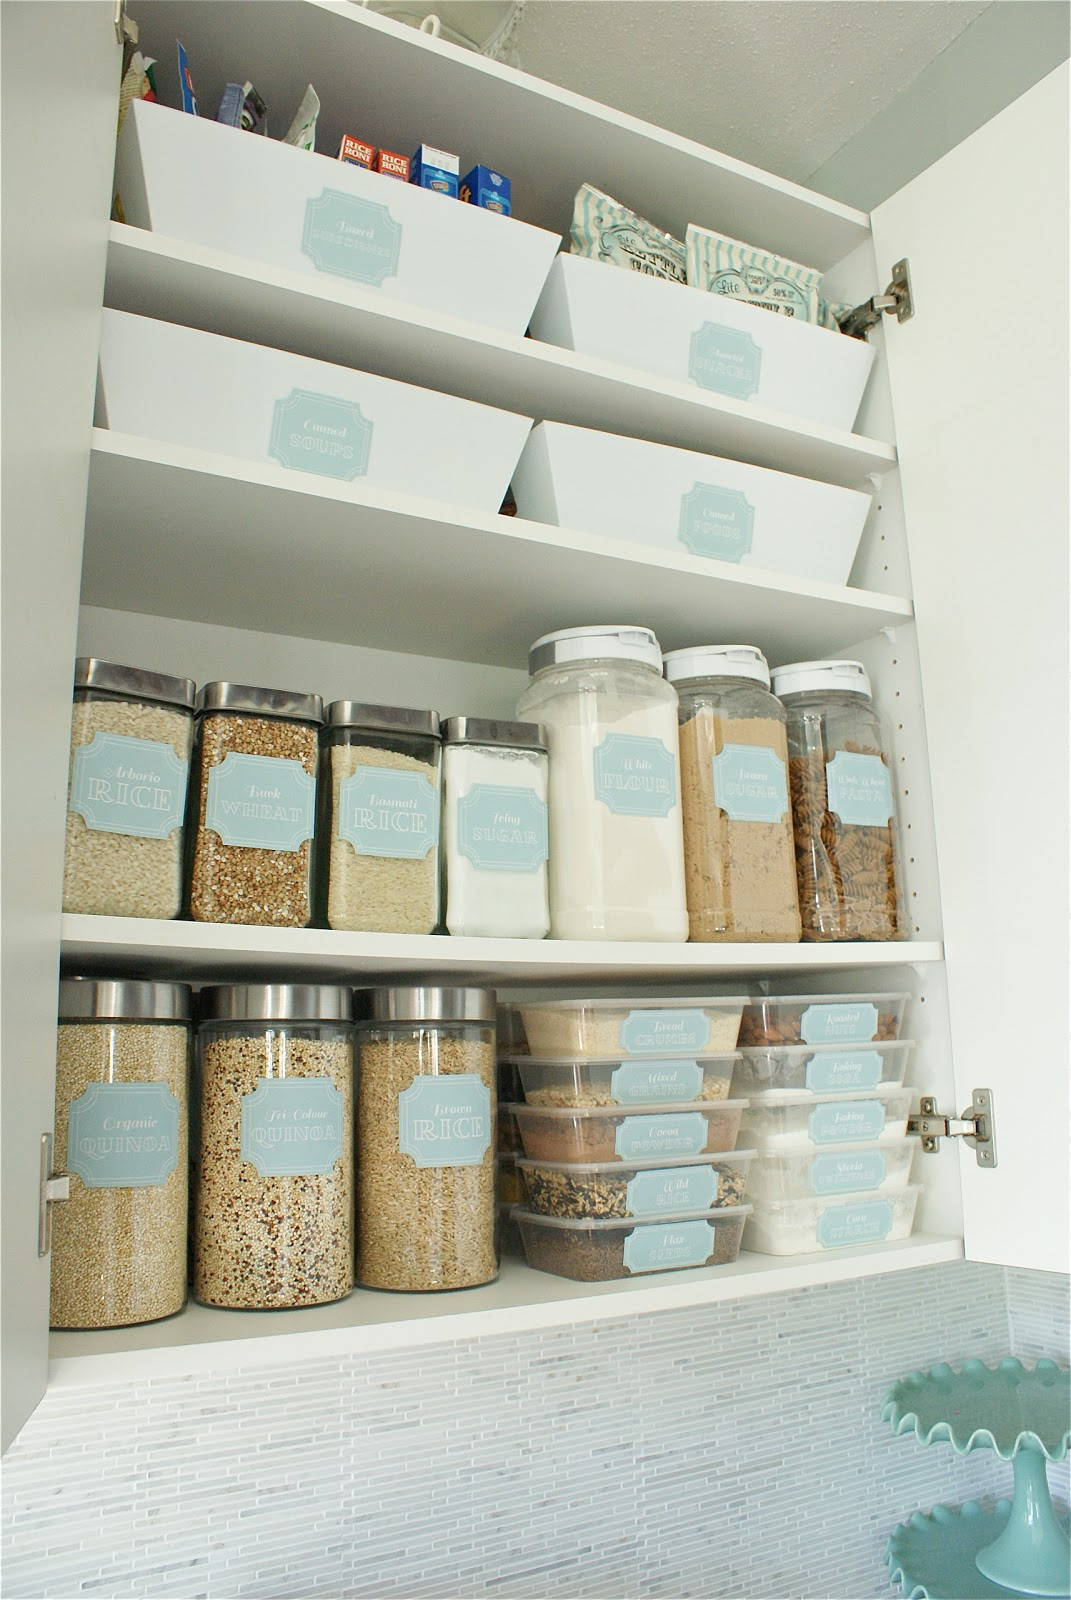 Best ideas about Pantry Organization Ideas . Save or Pin Home Kitchen Pantry Organization Ideas Mirabelle Now.